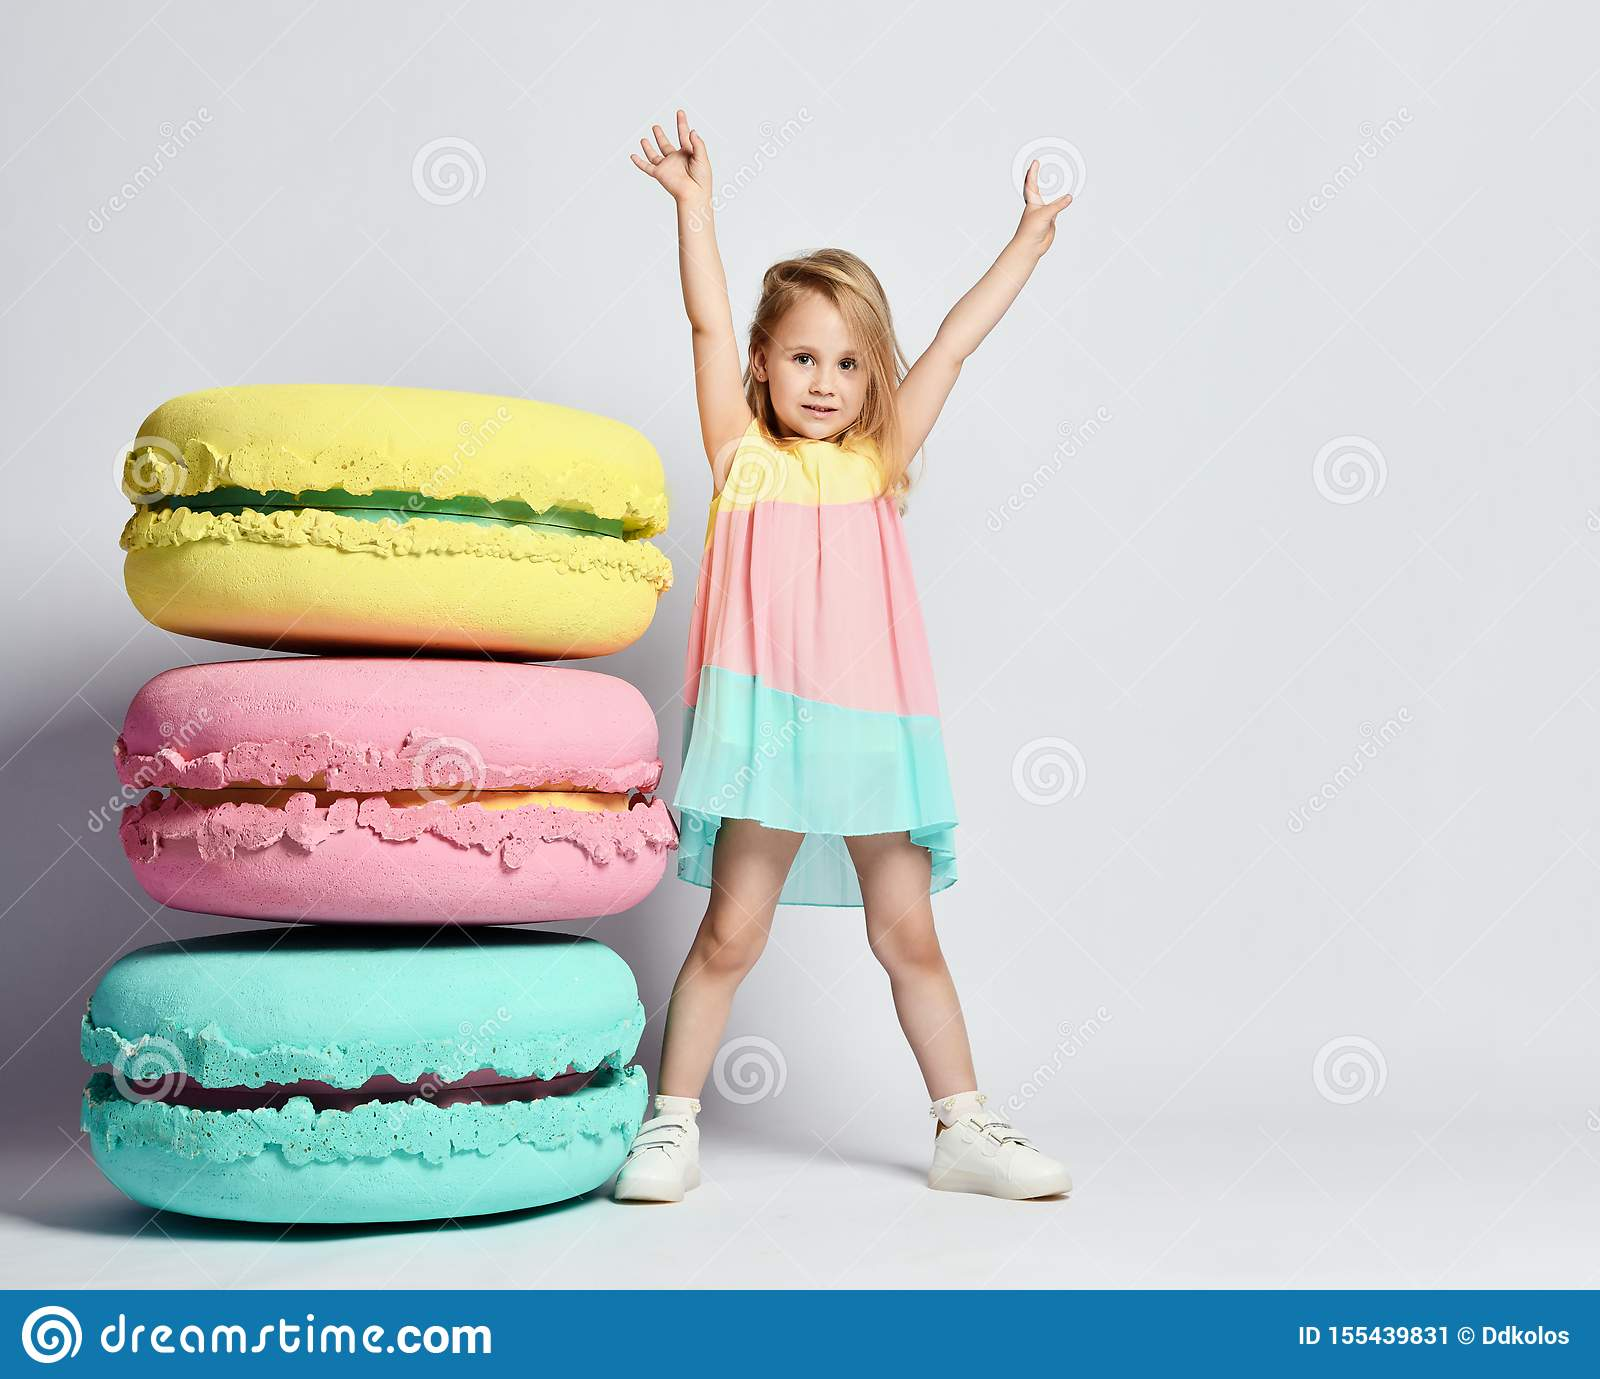 Room Decoration For Boy Birthday Party from thumbs.dreamstime.com